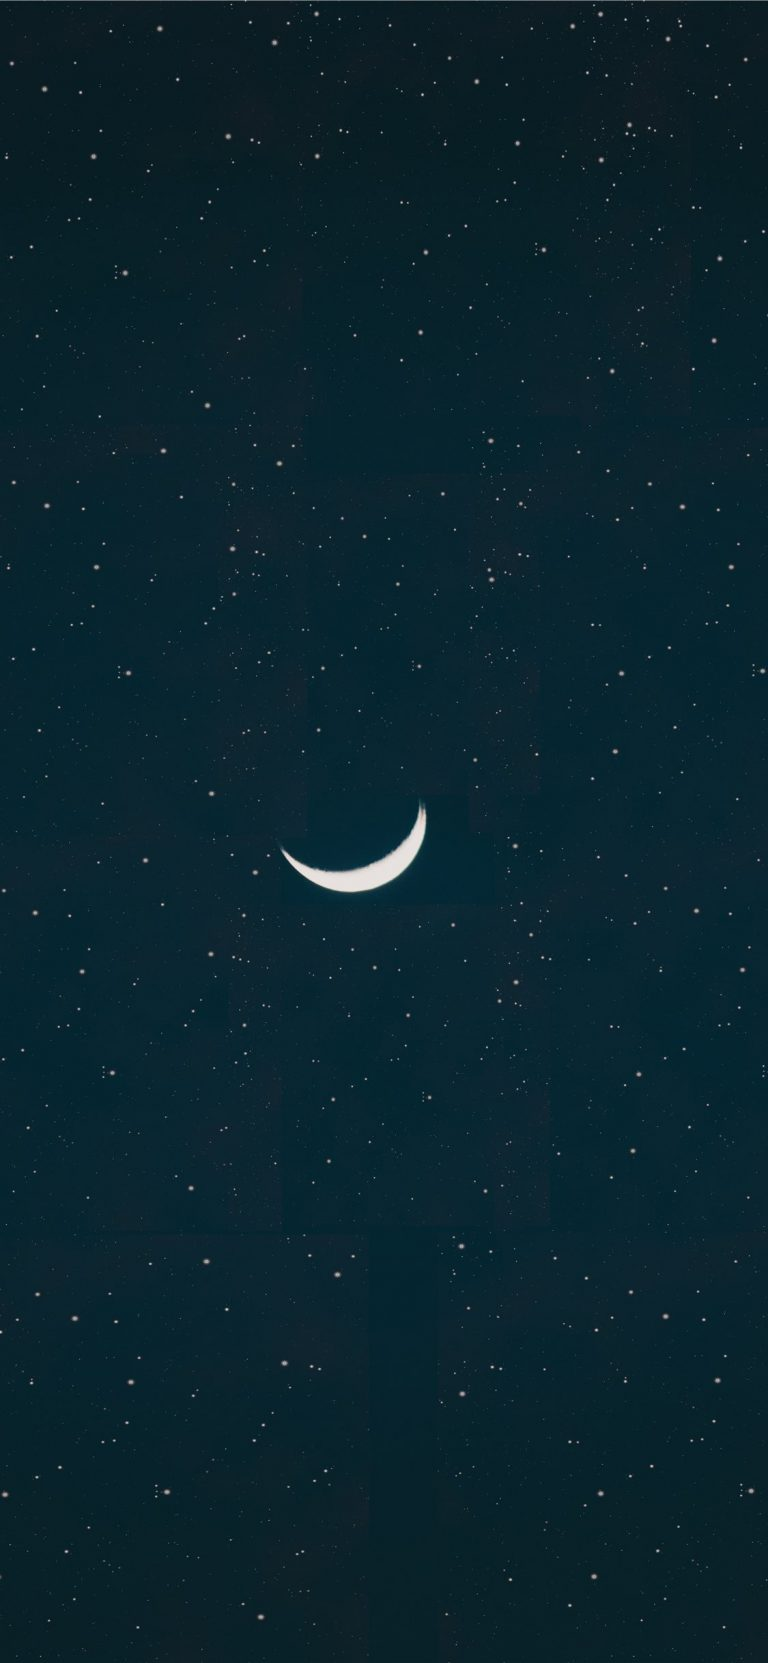 moon wallpaper 159